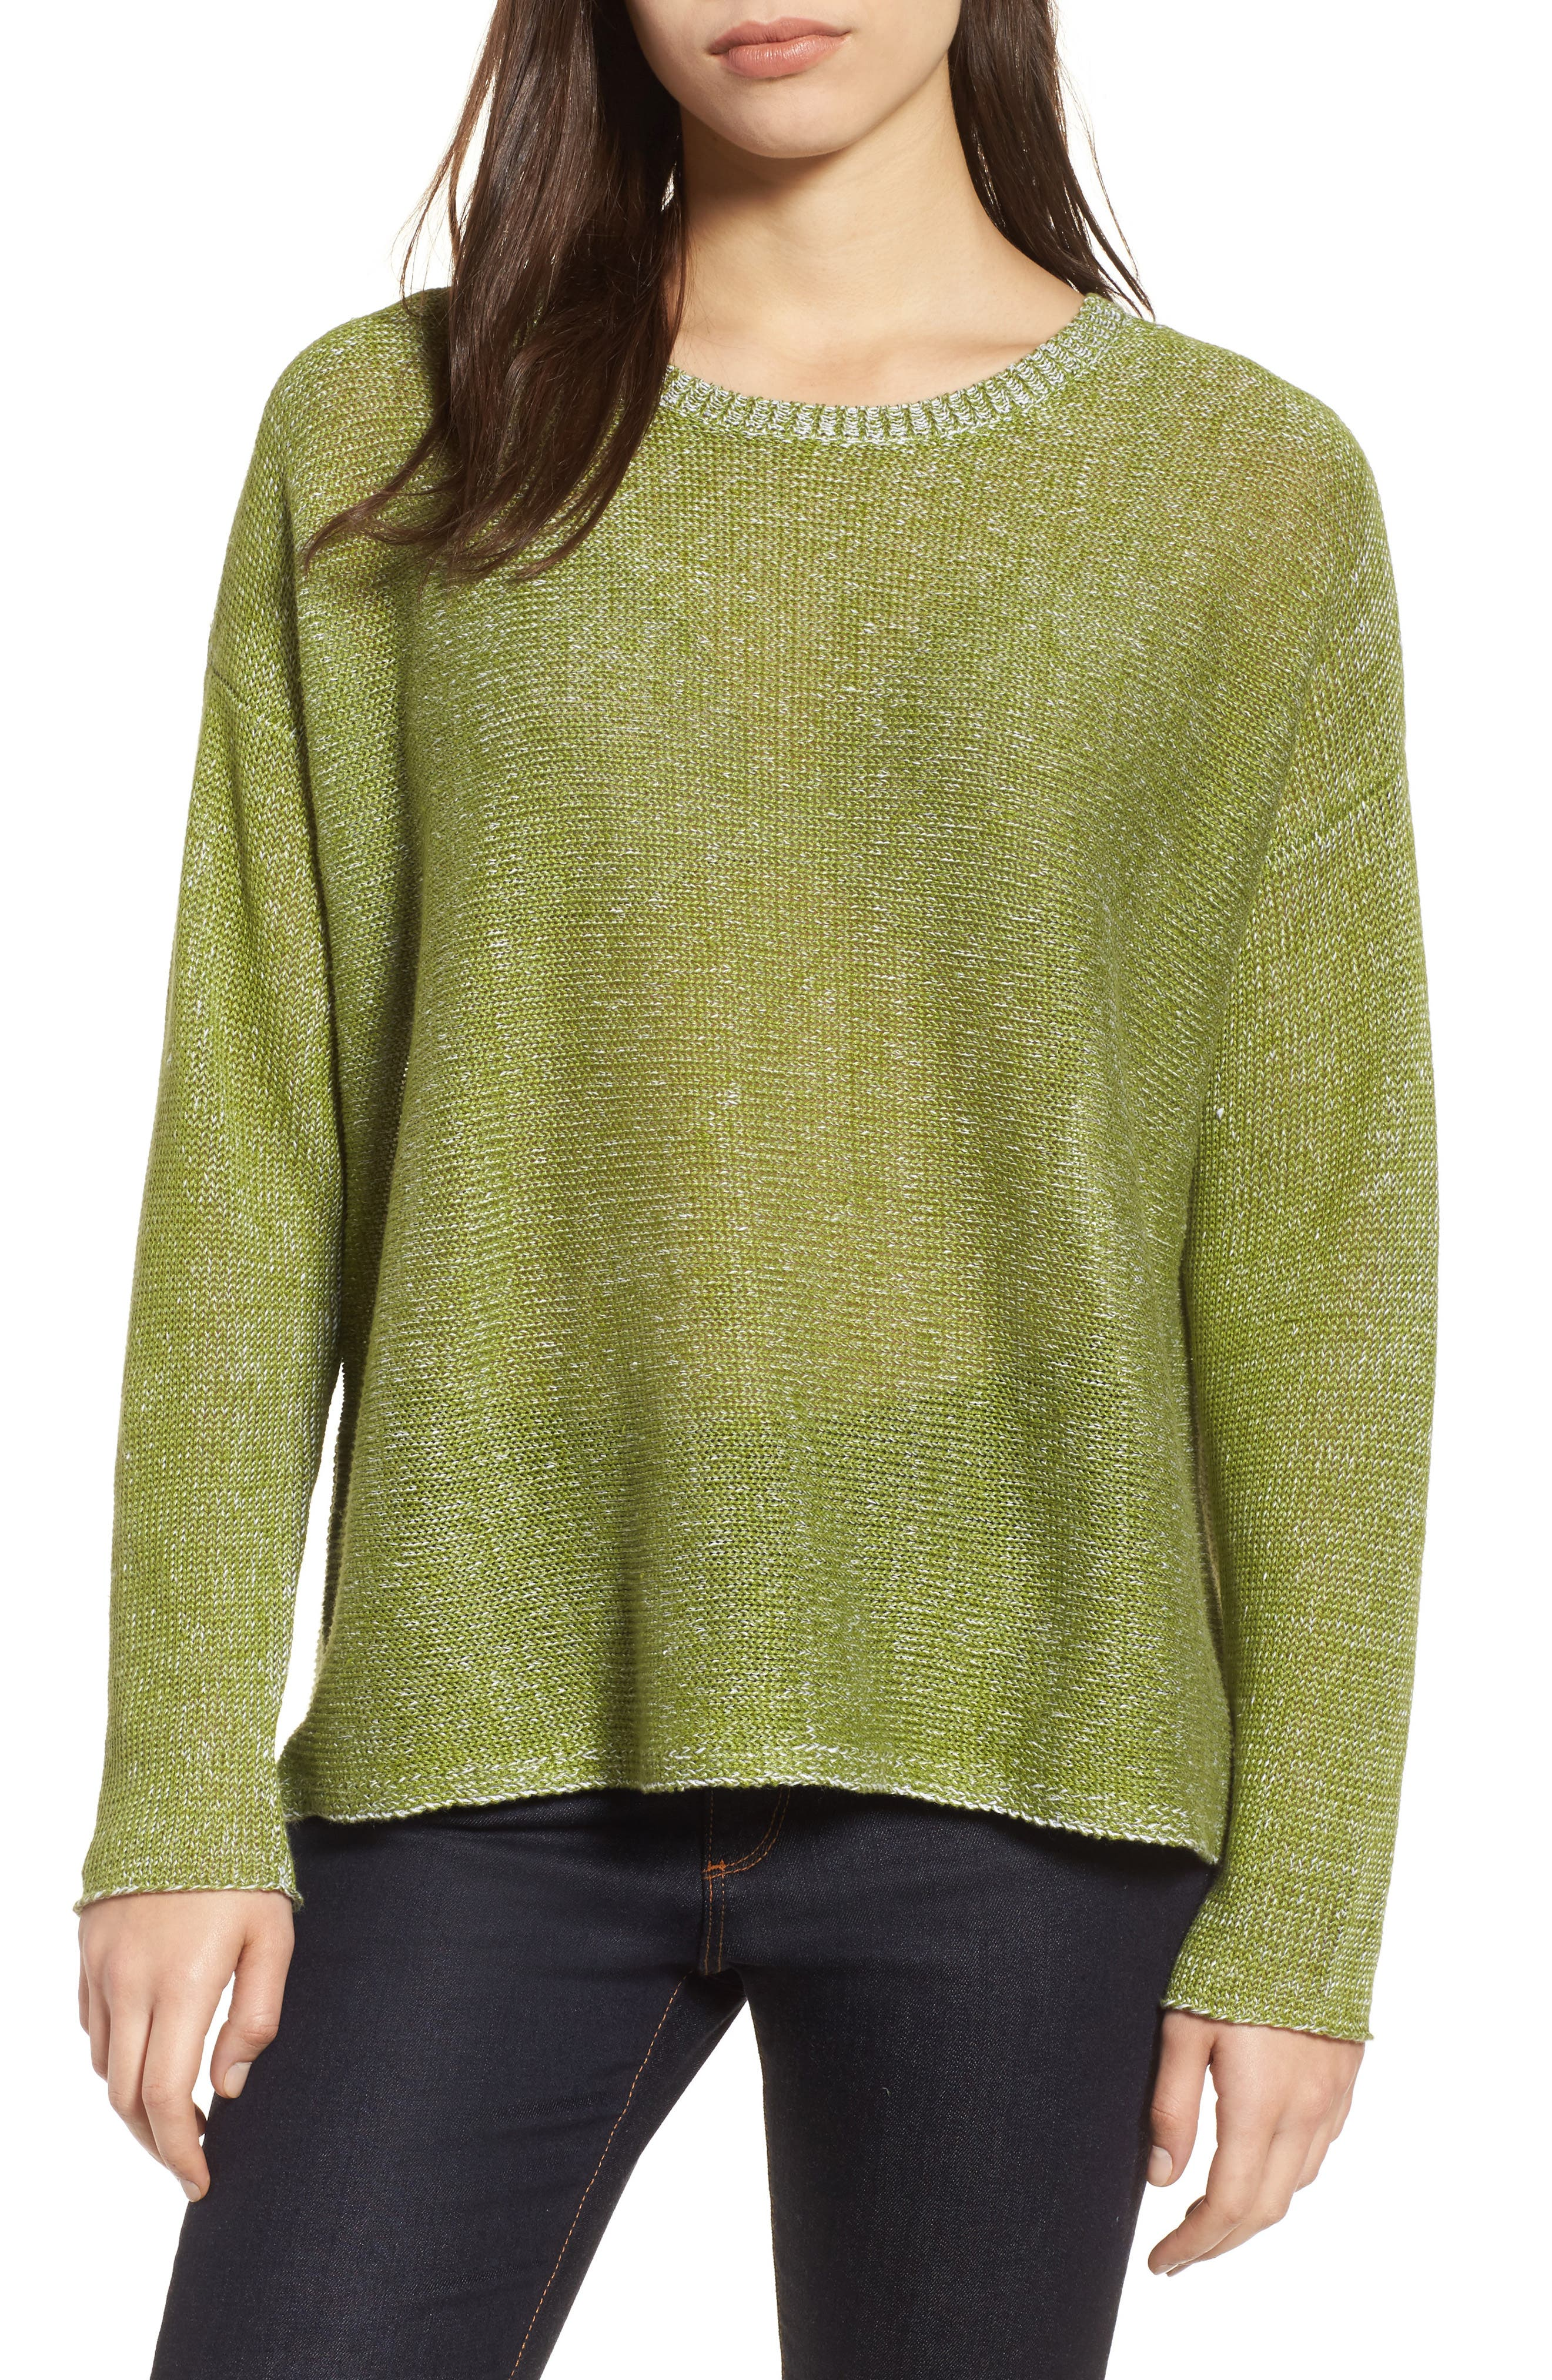 Boxy Organic Linen Sweater,                             Main thumbnail 1, color,                             308